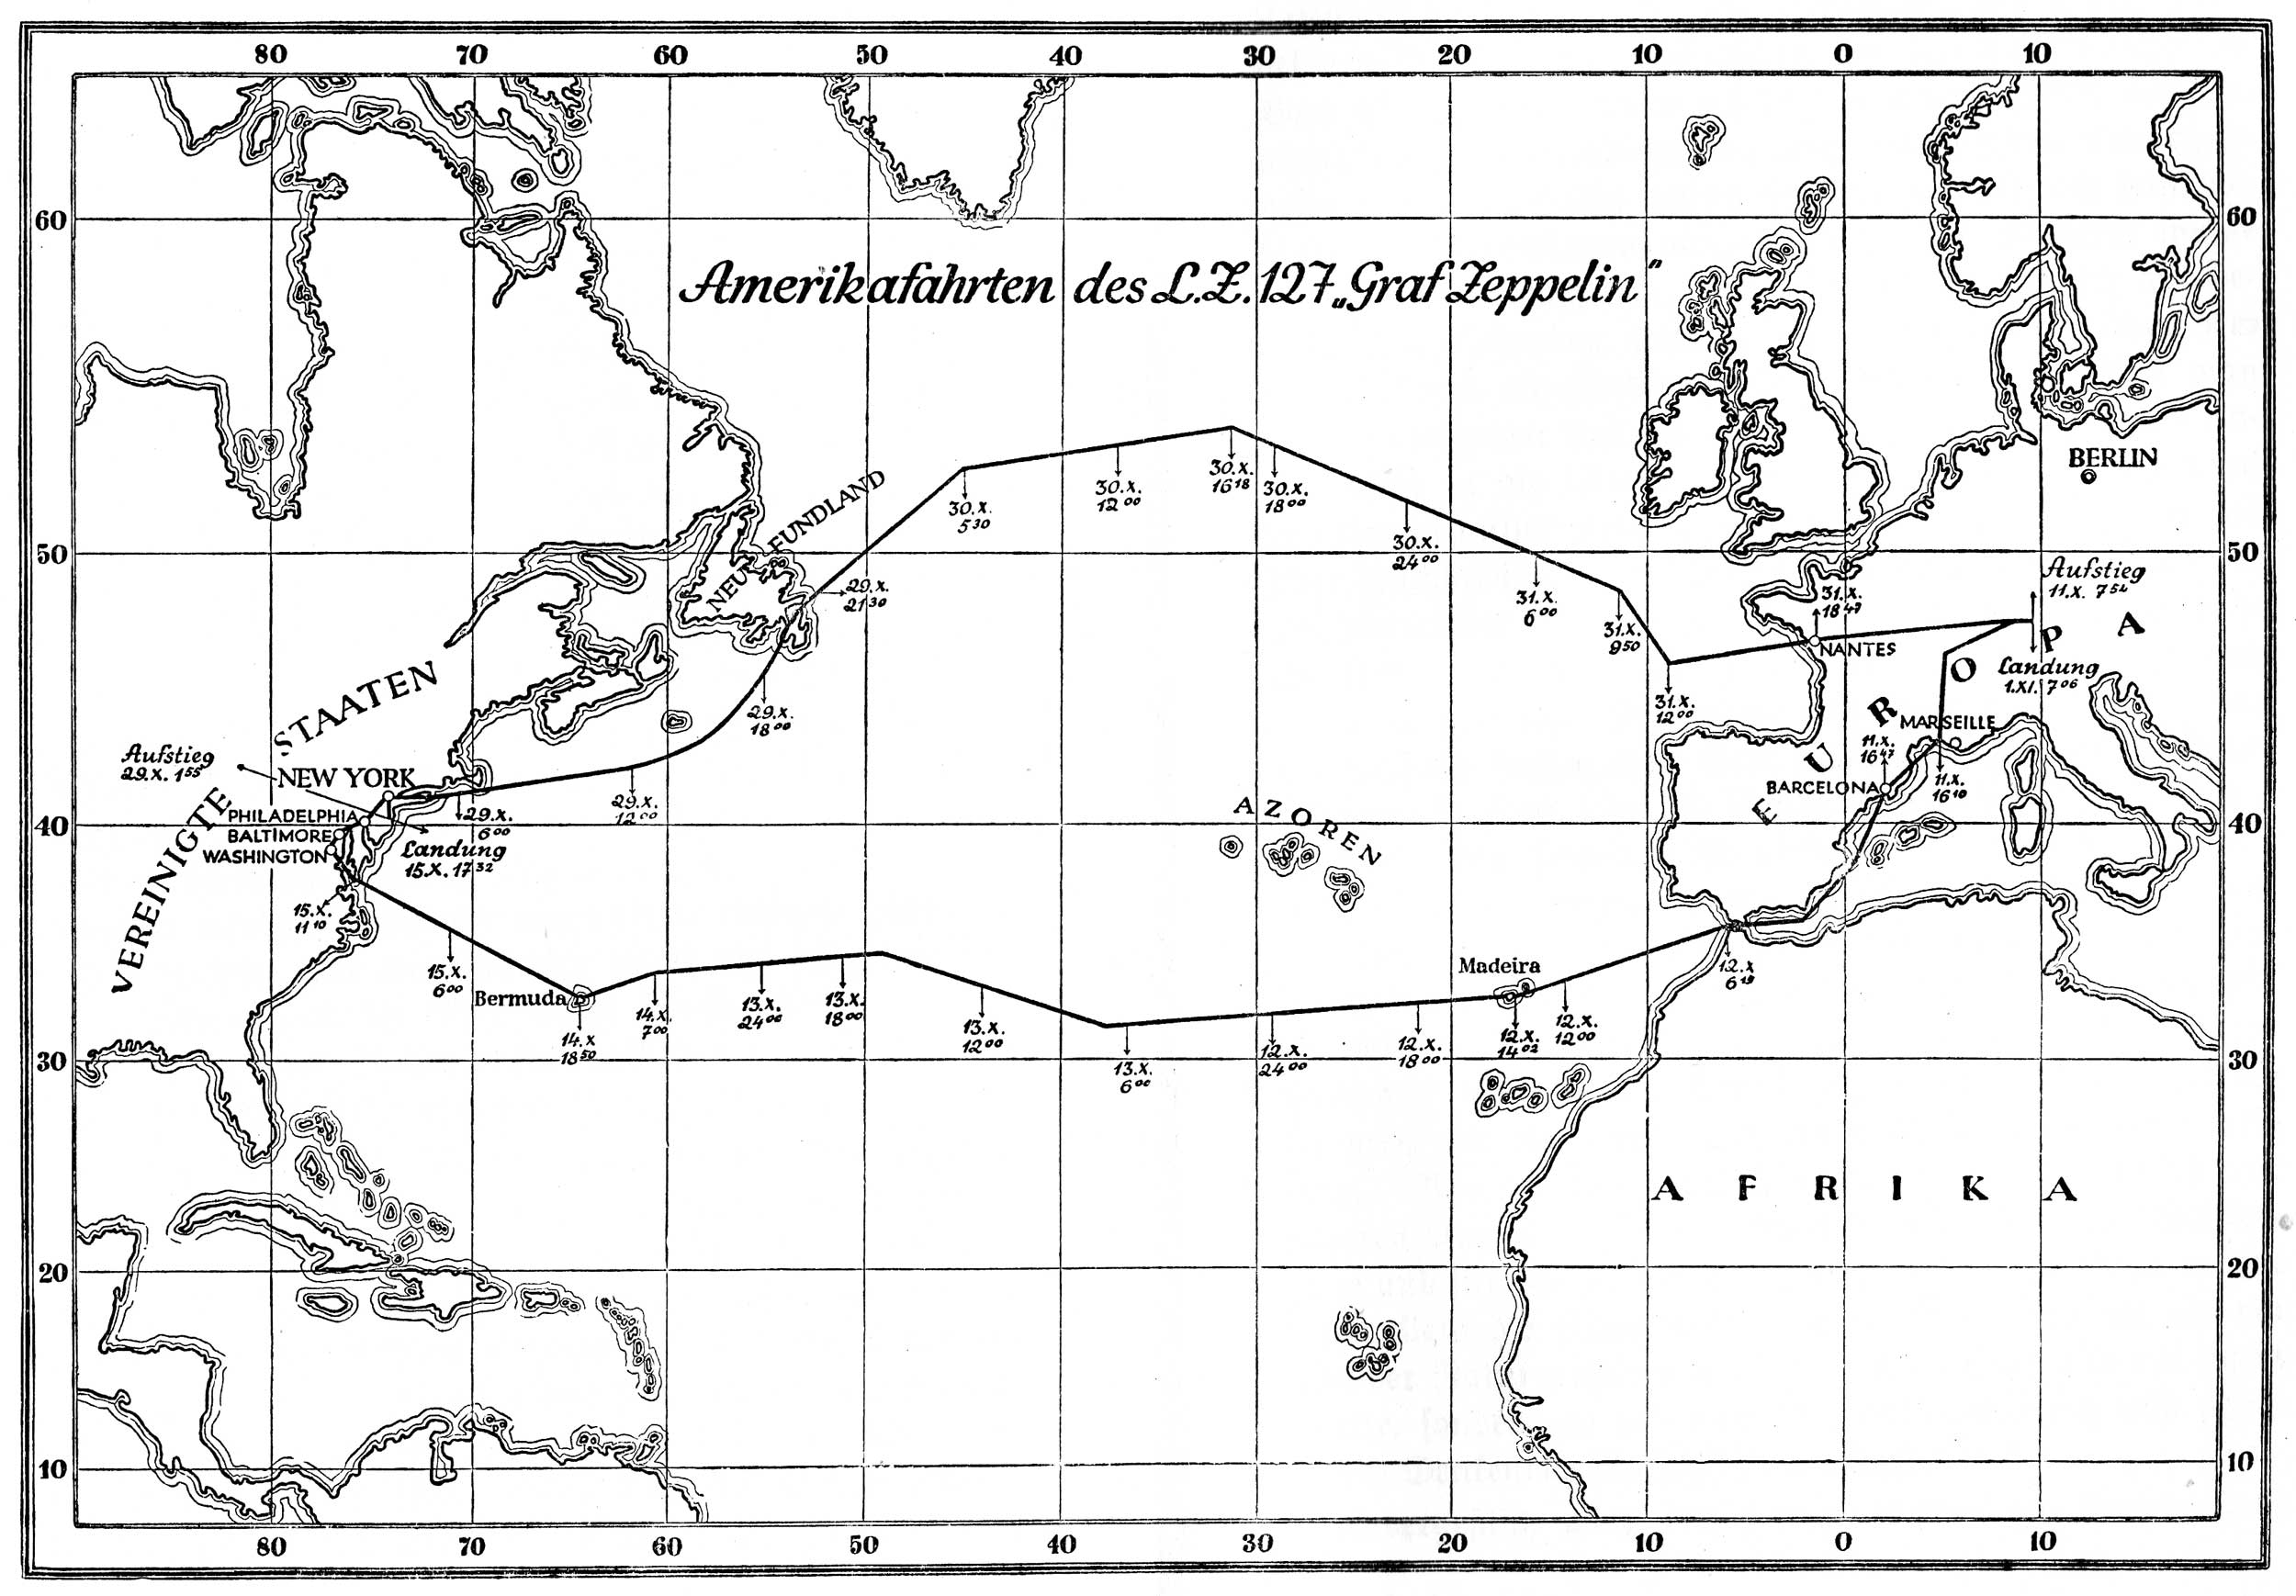 Graf Zeppelin first atlantic flight map